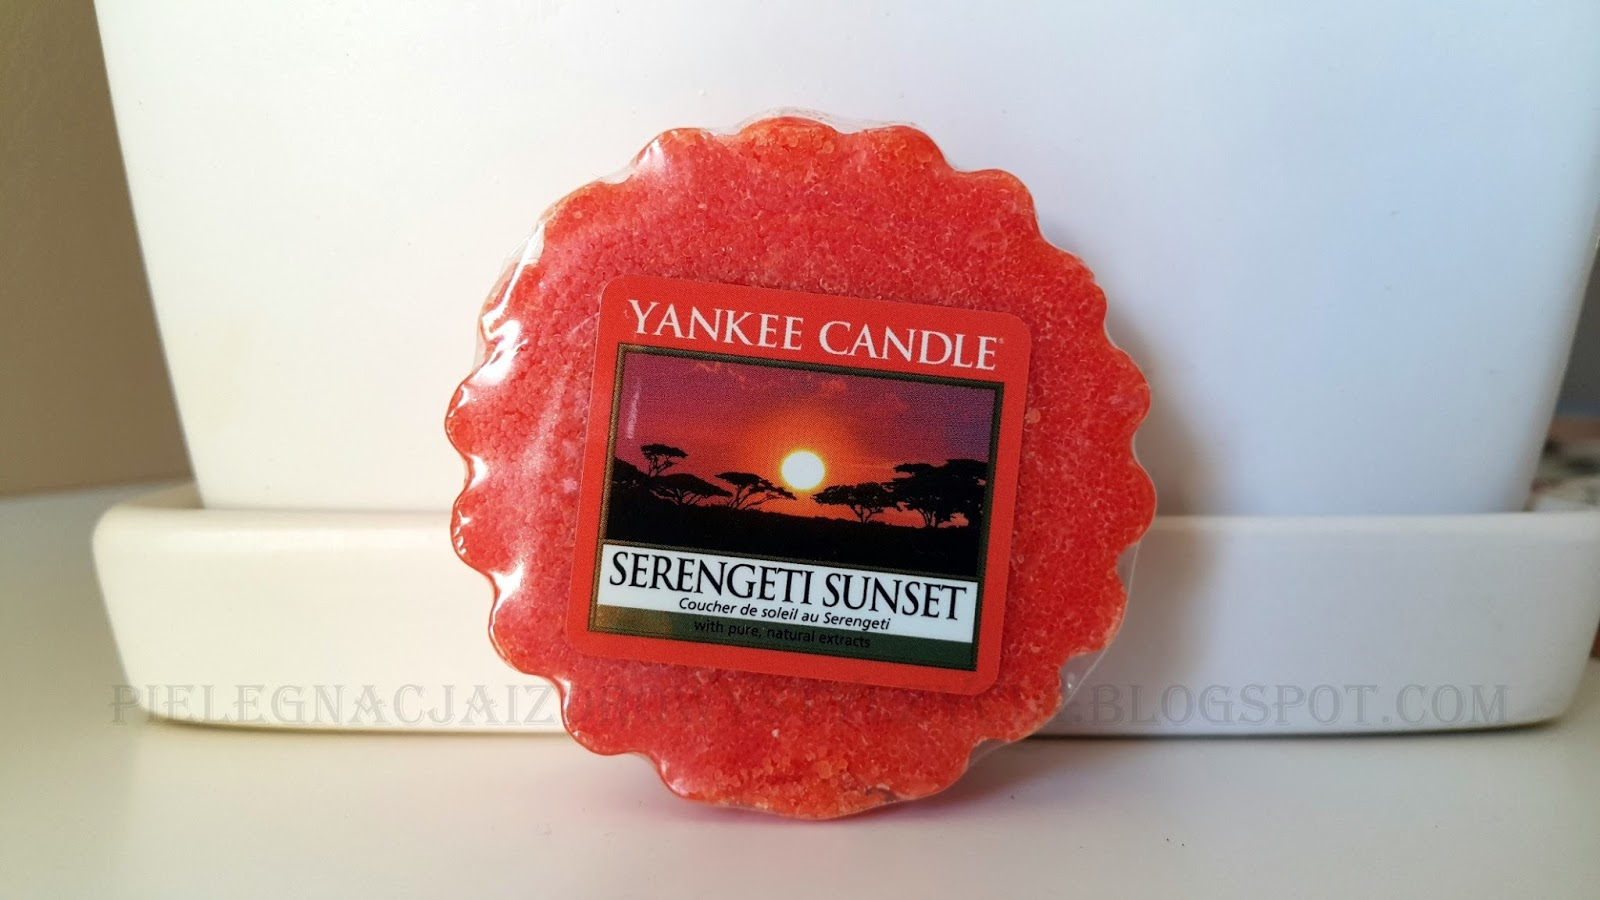 Serengeti Sunset Yankee Candle